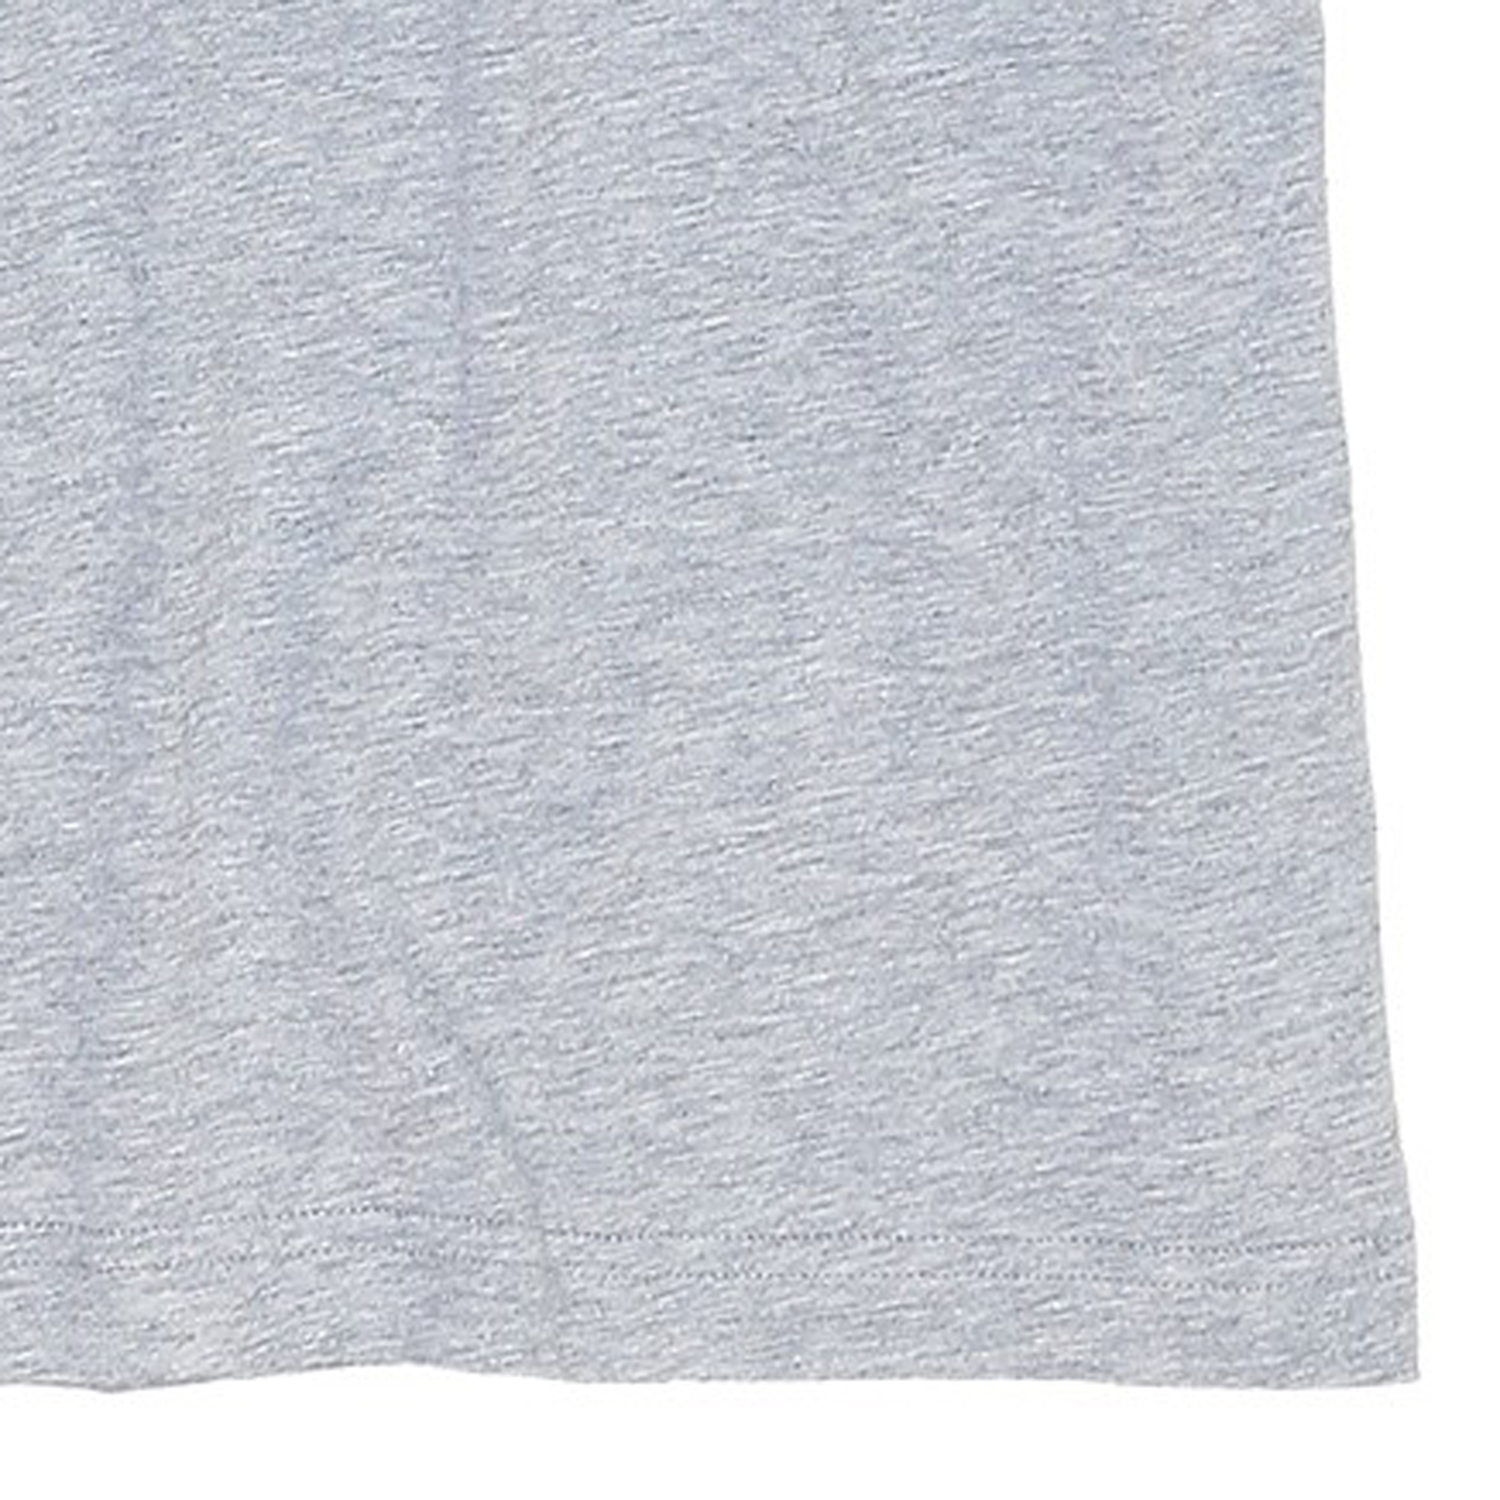 Detail Image to T-shirt with v-neck from Jockey in oversize until 6XL, light grey